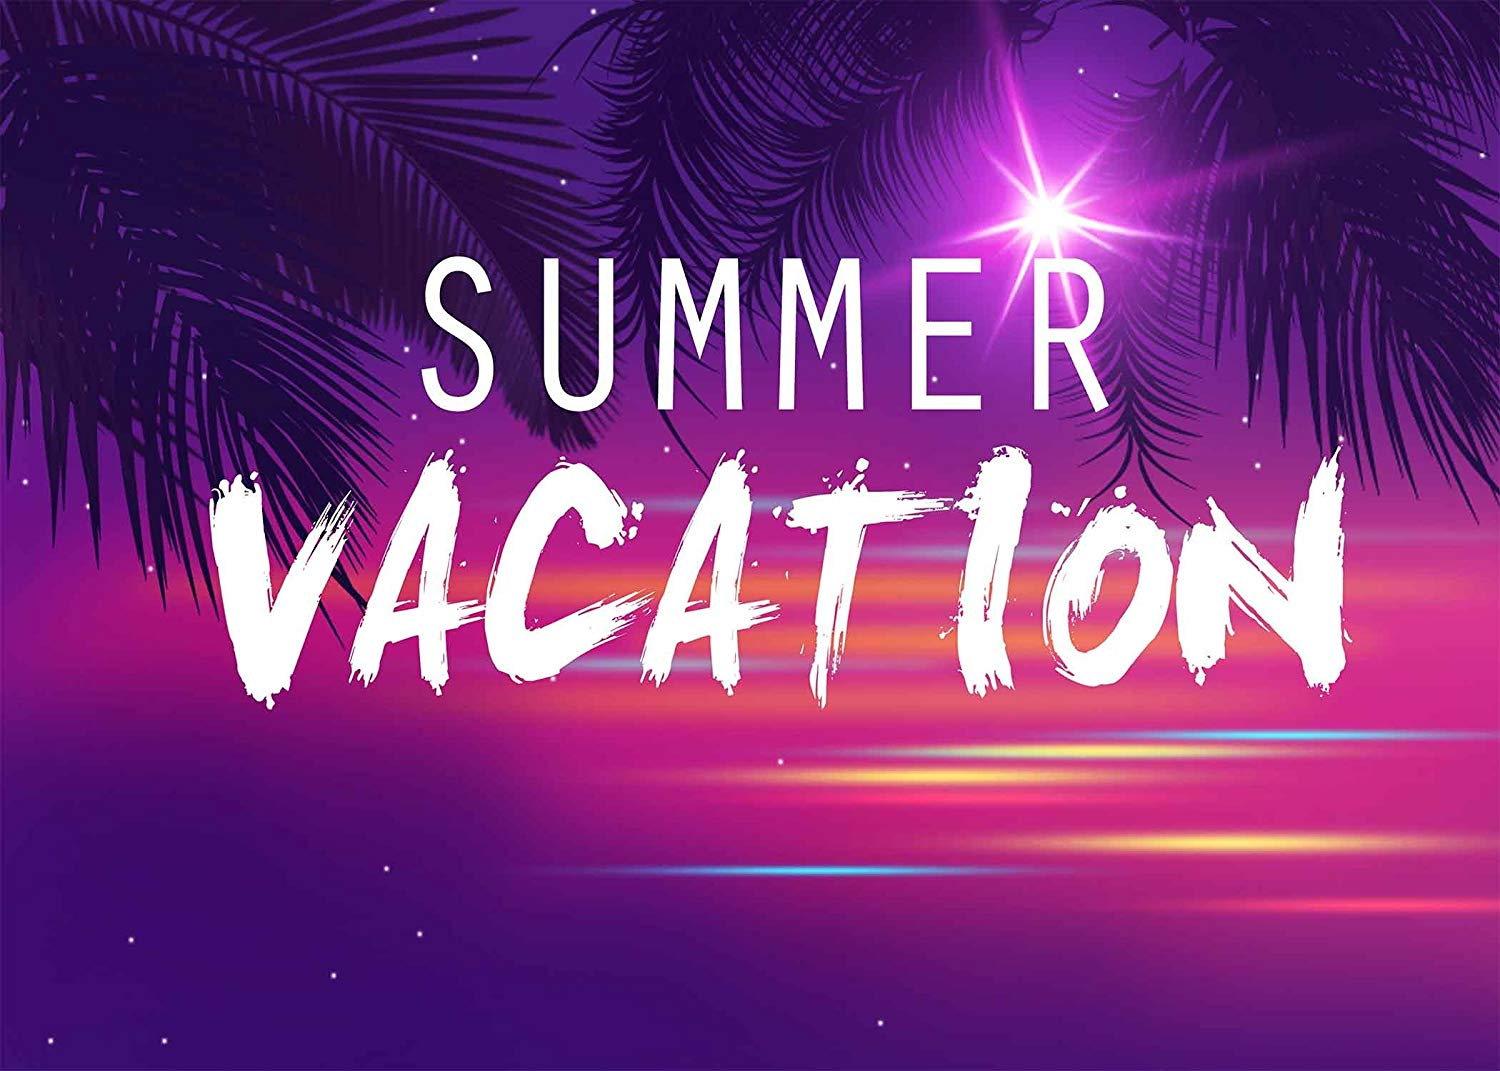 Image 4 - 7x5ft Summer Vacation Backdrop Ultra Violet Color Photo Backdrops Coconut Tree Branch Photography Background Studio Props-in Photo Studio Accessories from Consumer Electronics